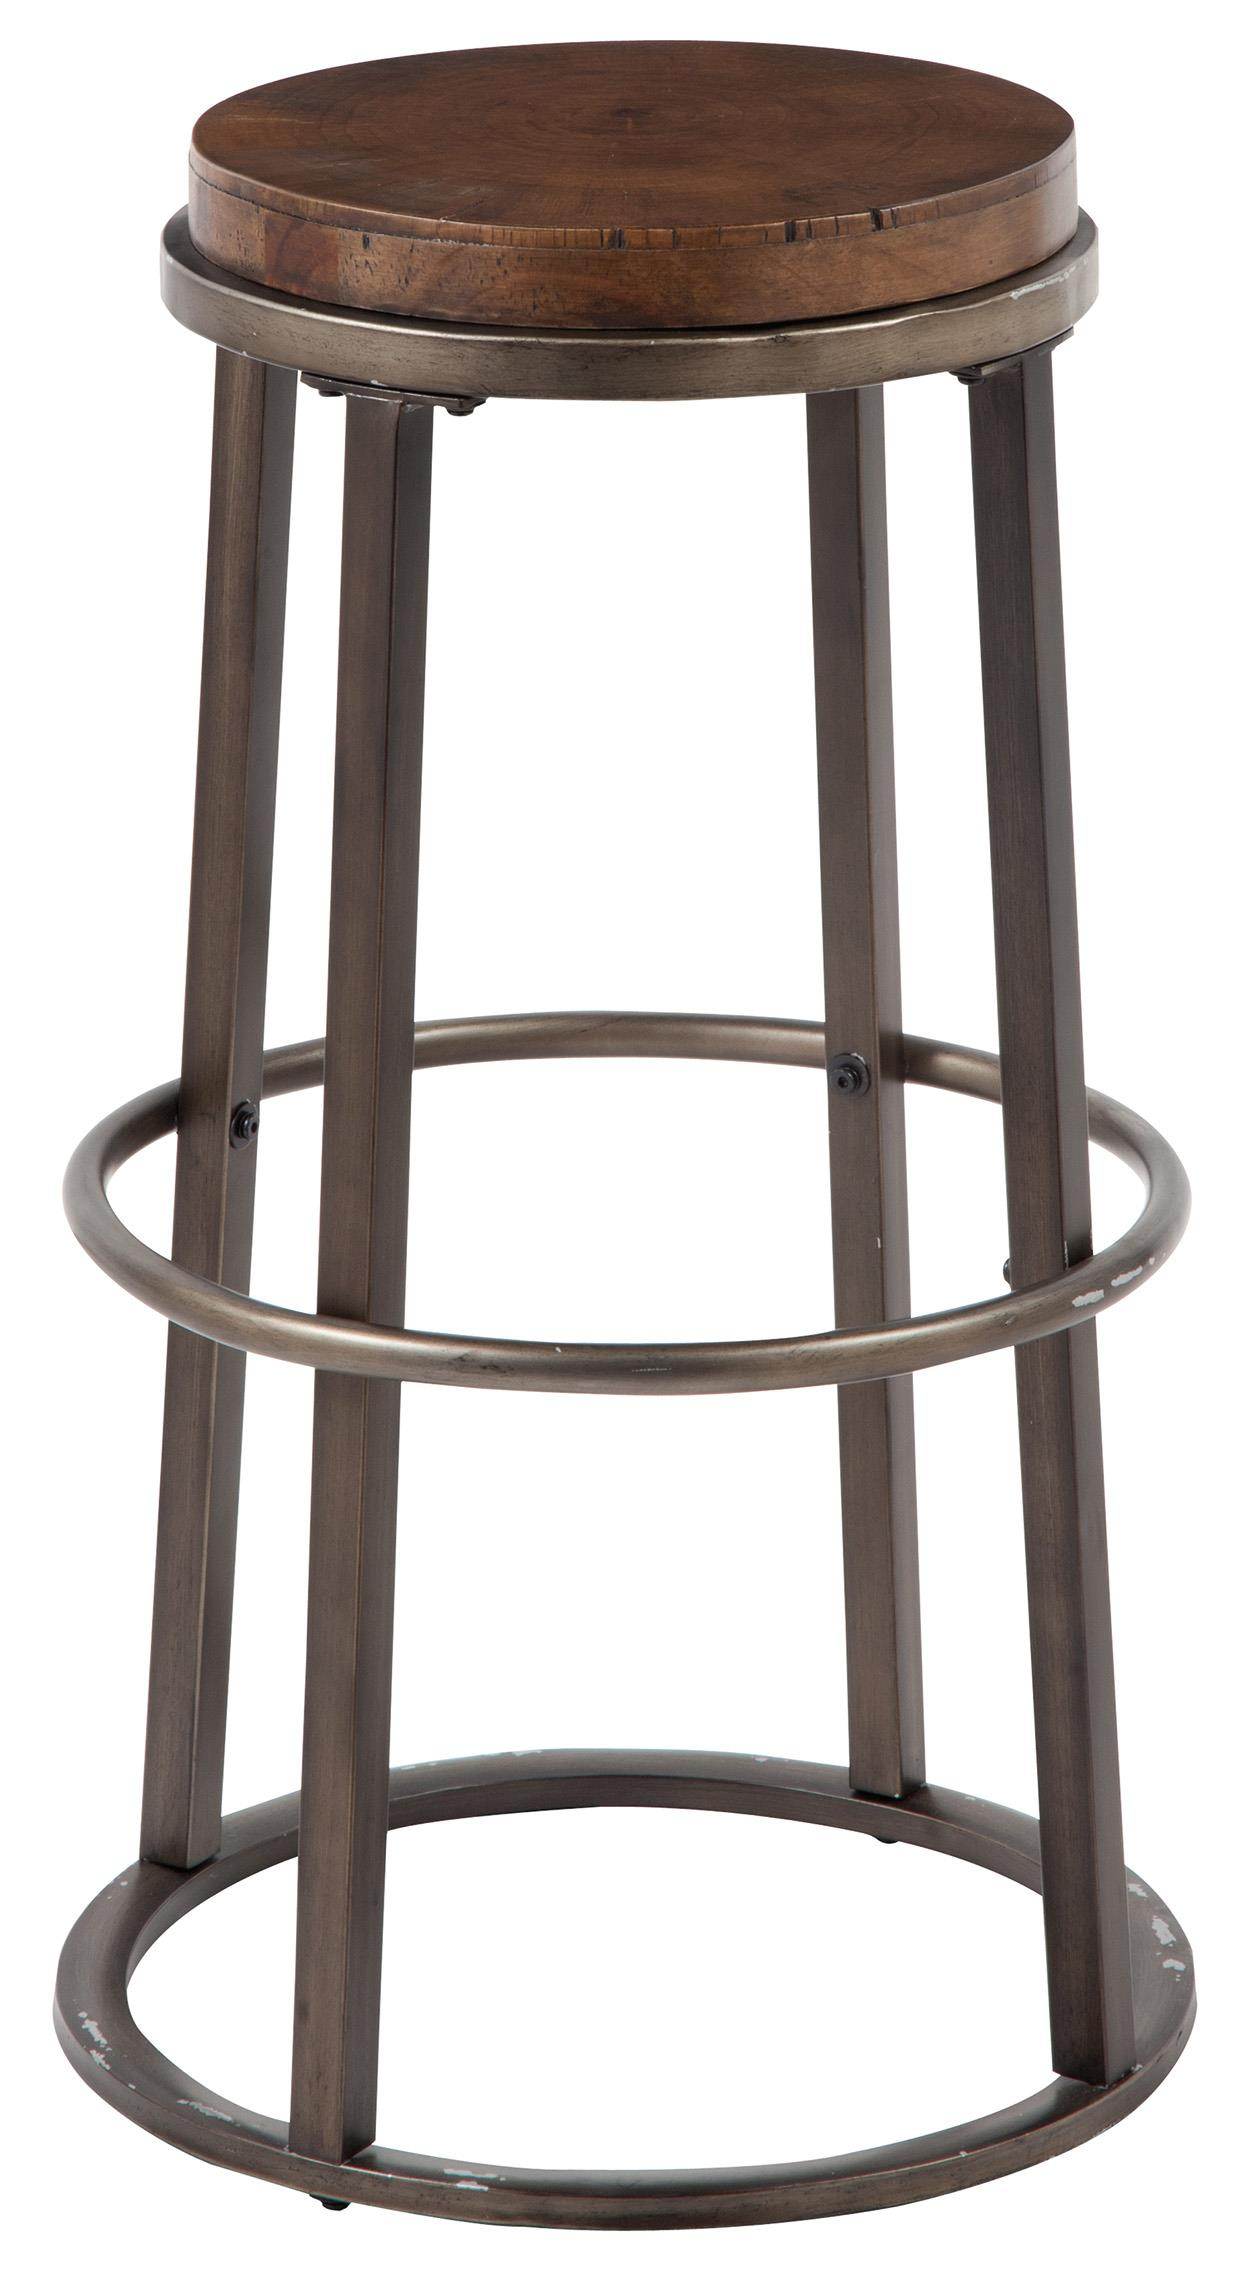 Signature Design by Ashley Glosco Tall Stool - Item Number: D548-330